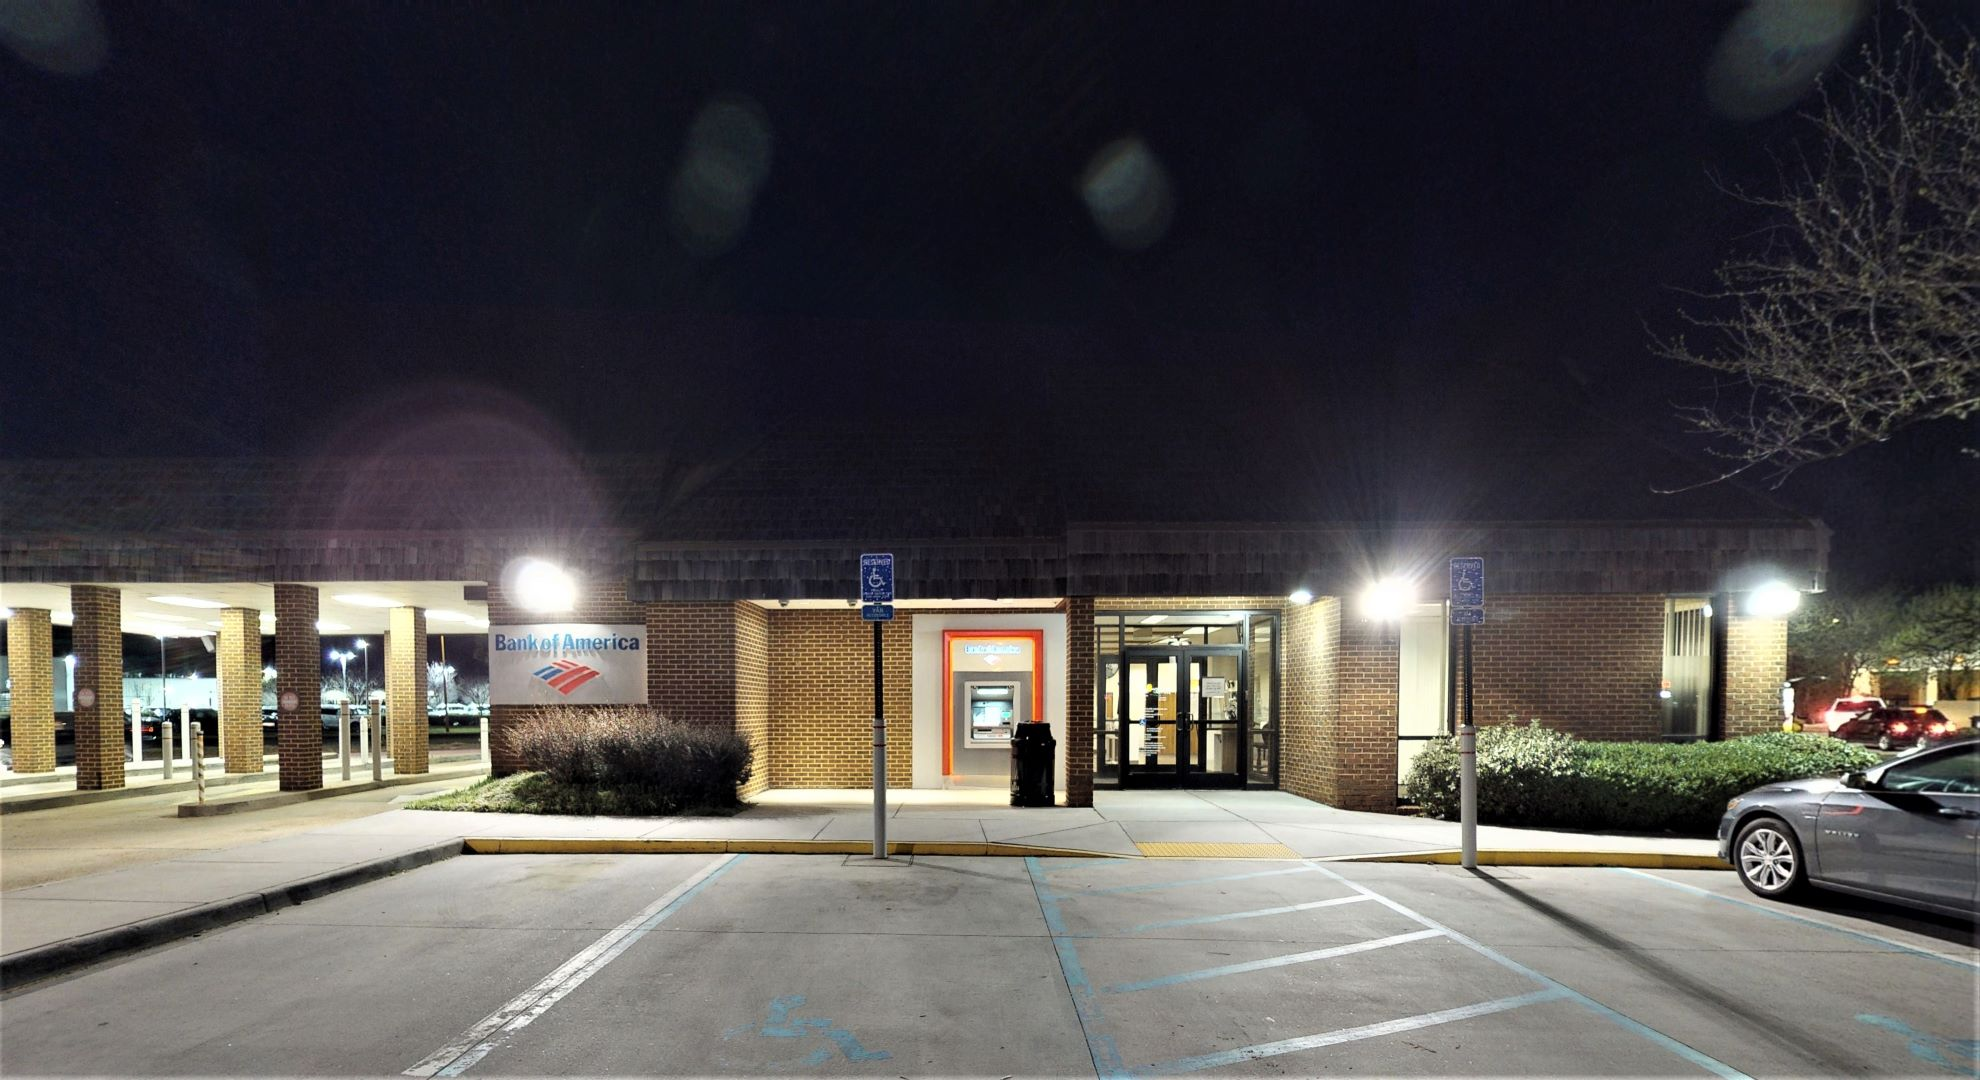 Bank of America financial center with drive-thru ATM | 1801 Greenbrier Pkwy, Chesapeake, VA 23320